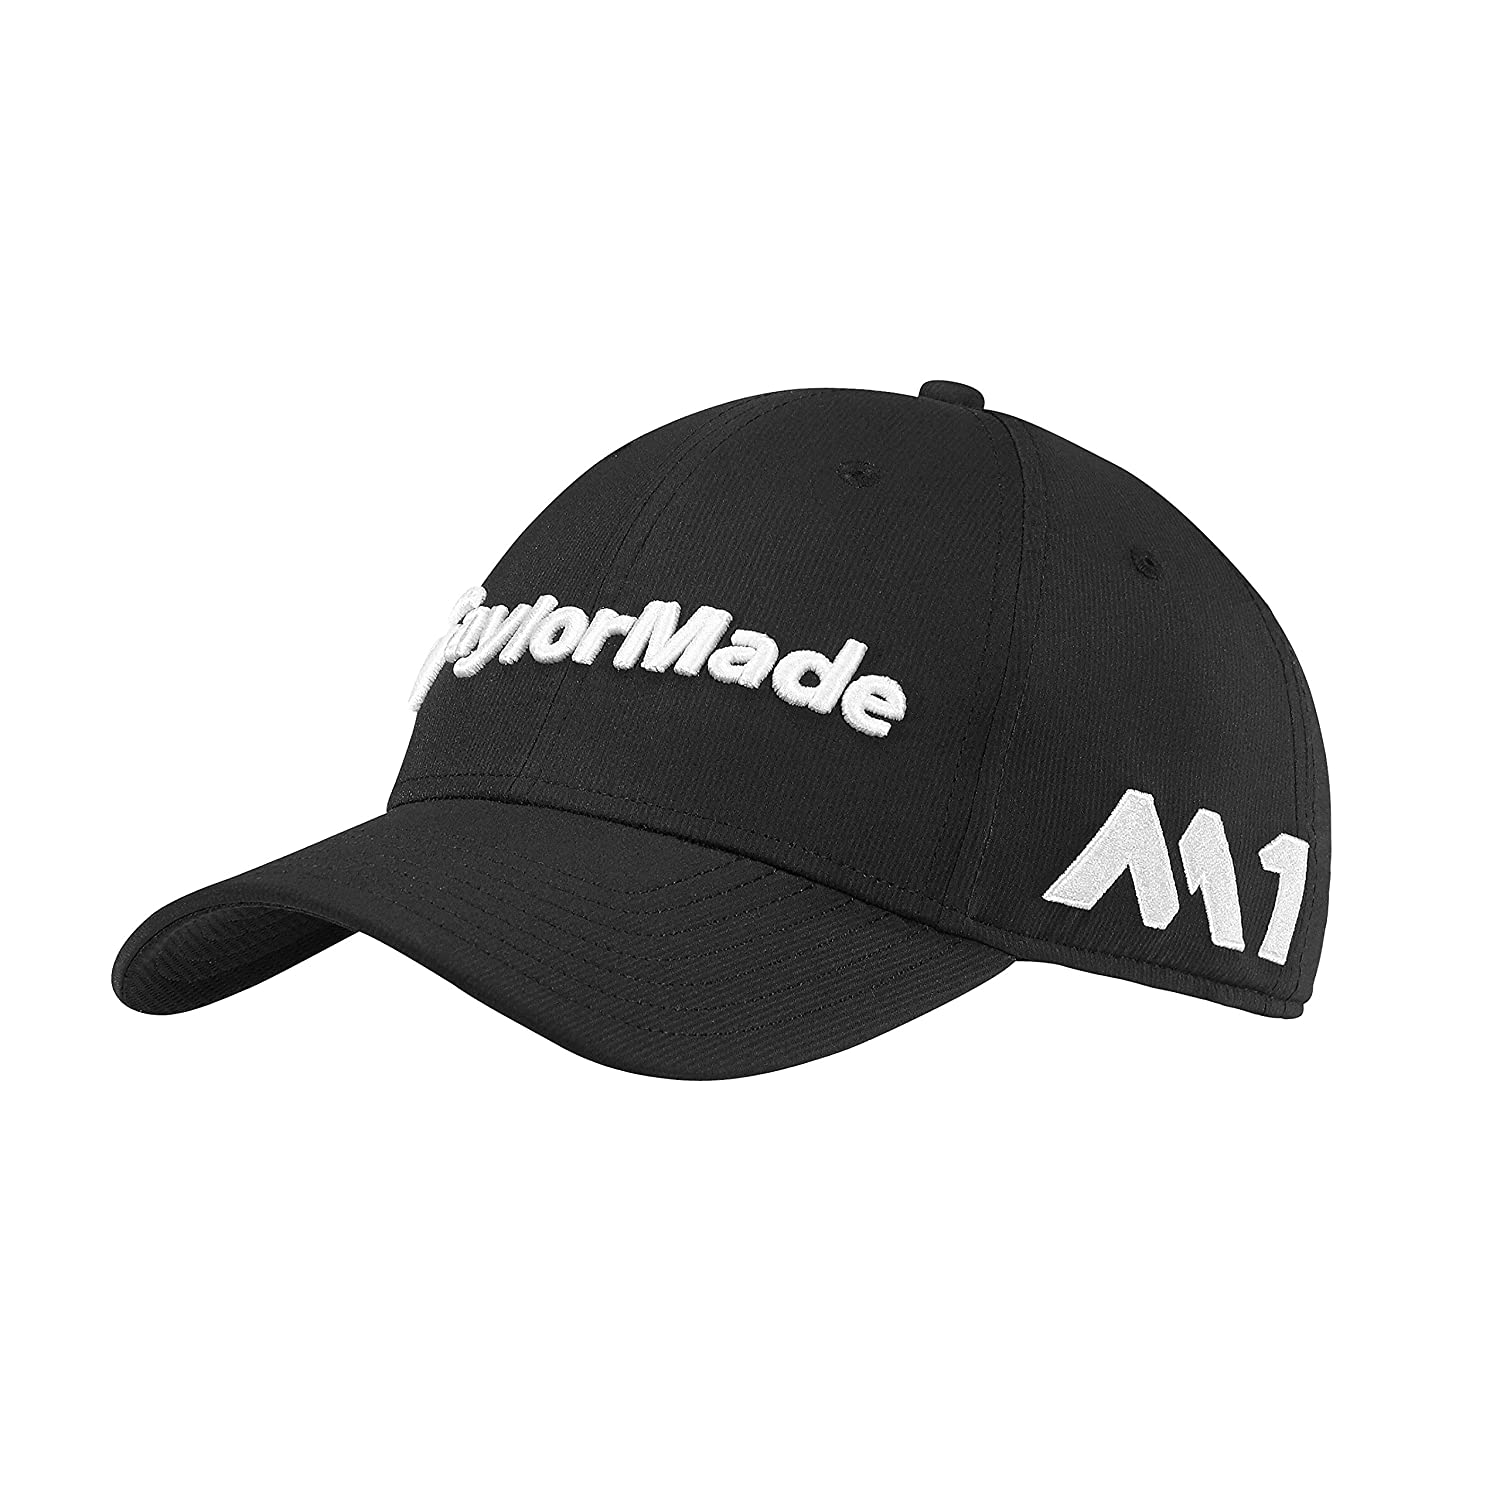 Amazon.com   TaylorMade Golf 2018 Men s Tour Radar Hat f5b8d44148b1